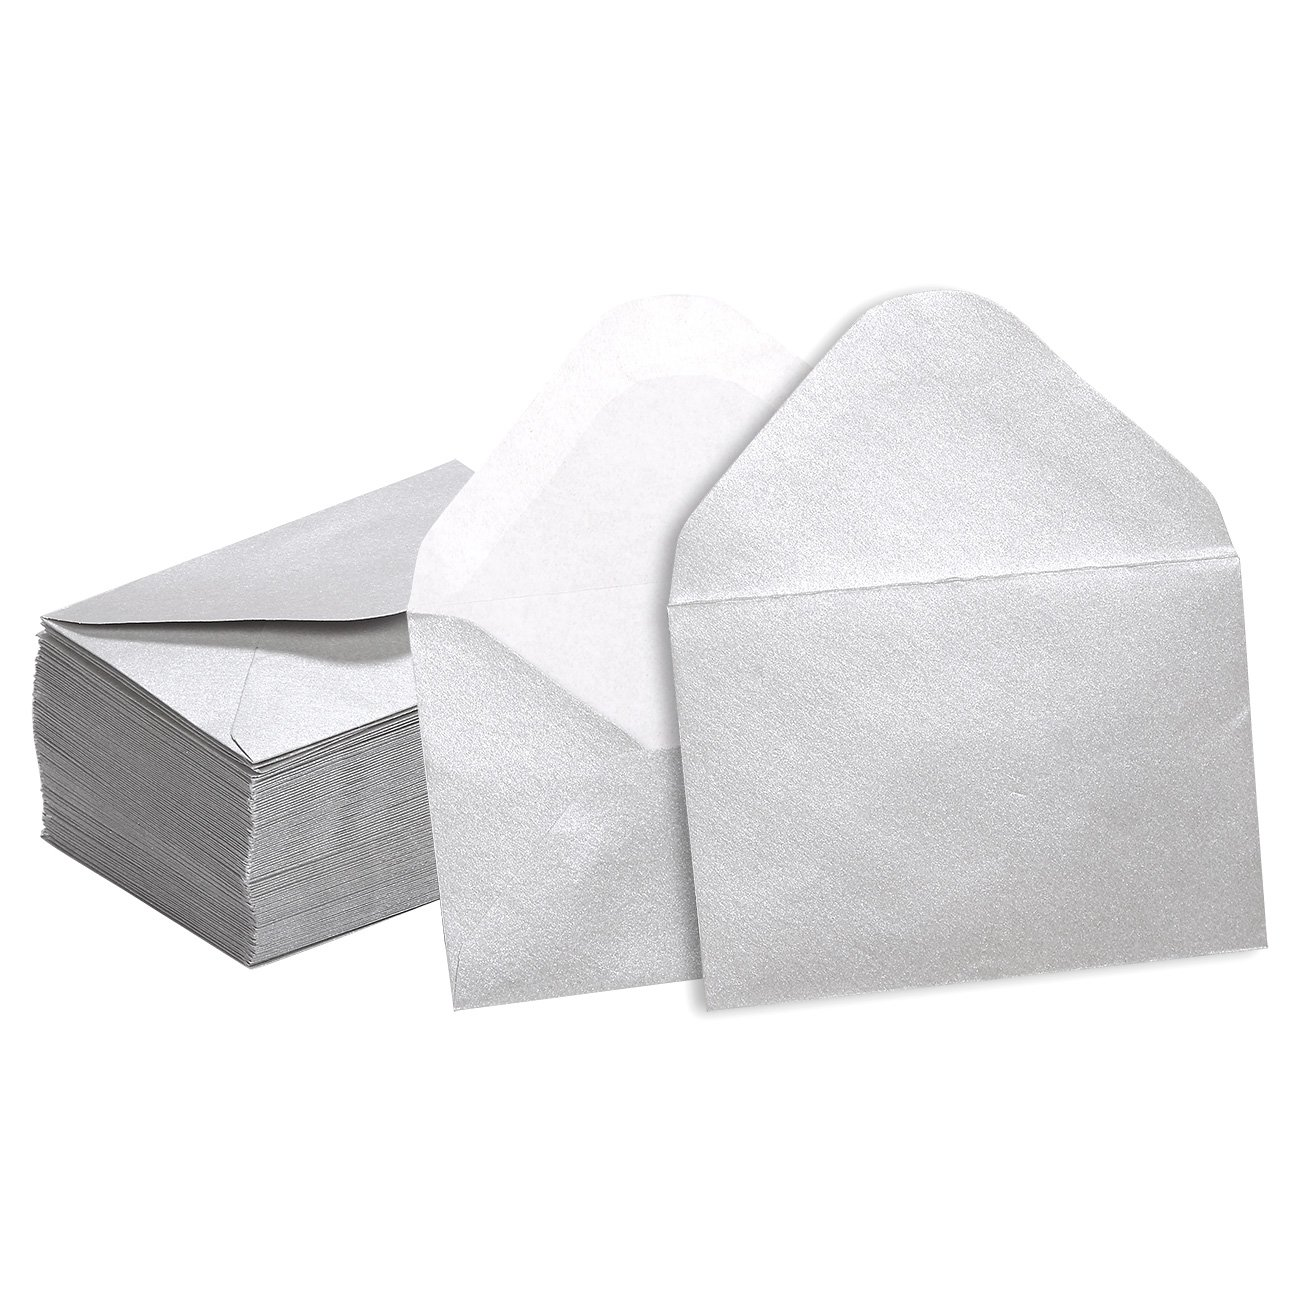 Cheap gift card envelopes find gift card envelopes deals on line at get quotations 100 pack silver mini envelopes gift card envelopes business card envelopes value pack reheart Choice Image